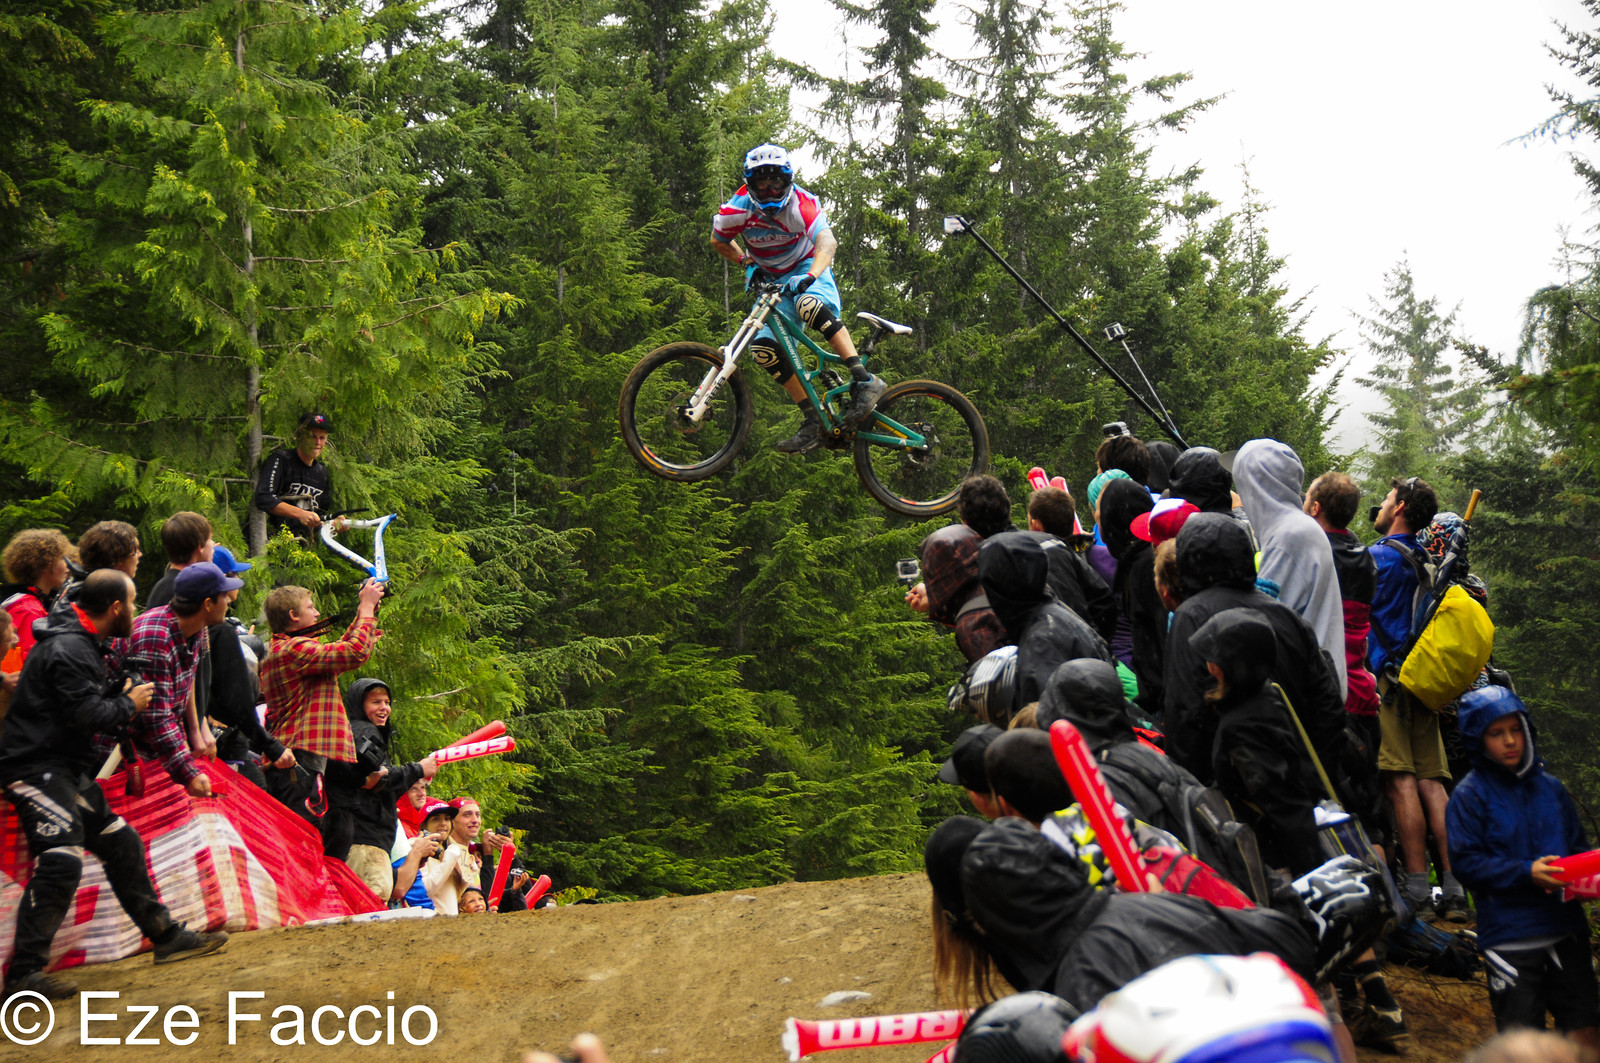 Gully Style Whip of the wolrd - ezefaccio - Mountain Biking Pictures - Vital MTB